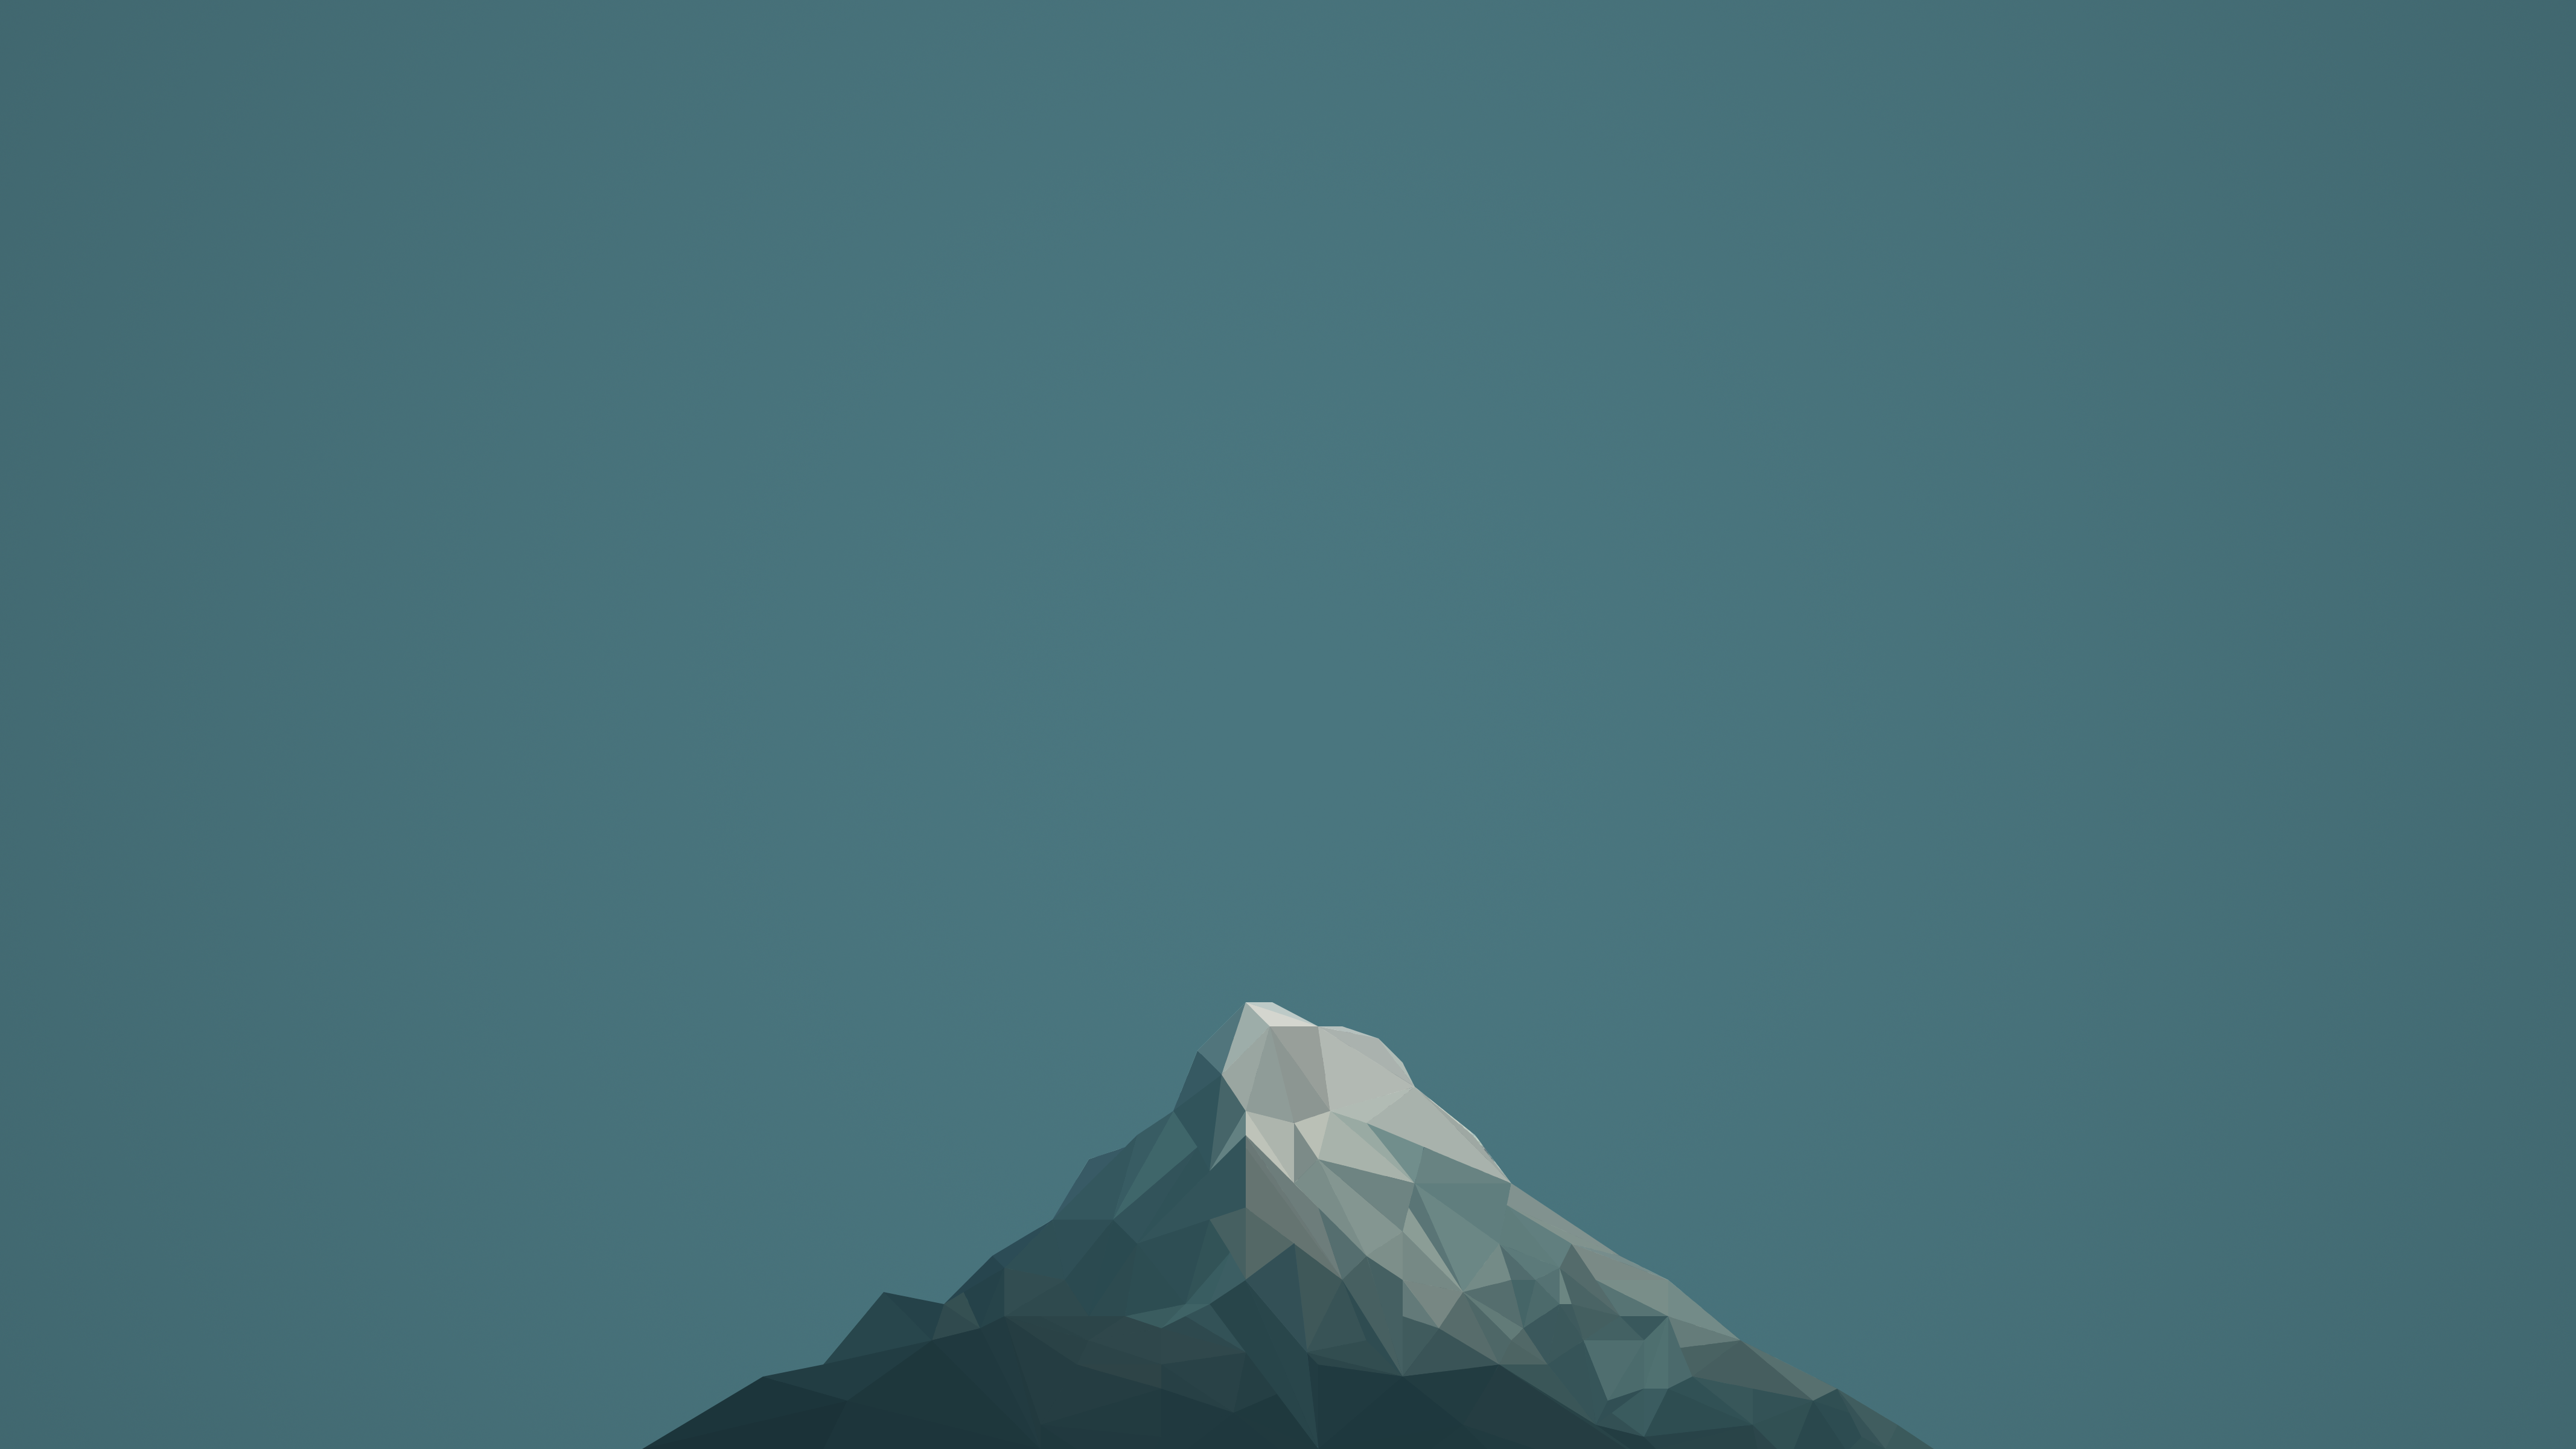 Low poly mountain by photosoups on deviantart for Minimal art landscape